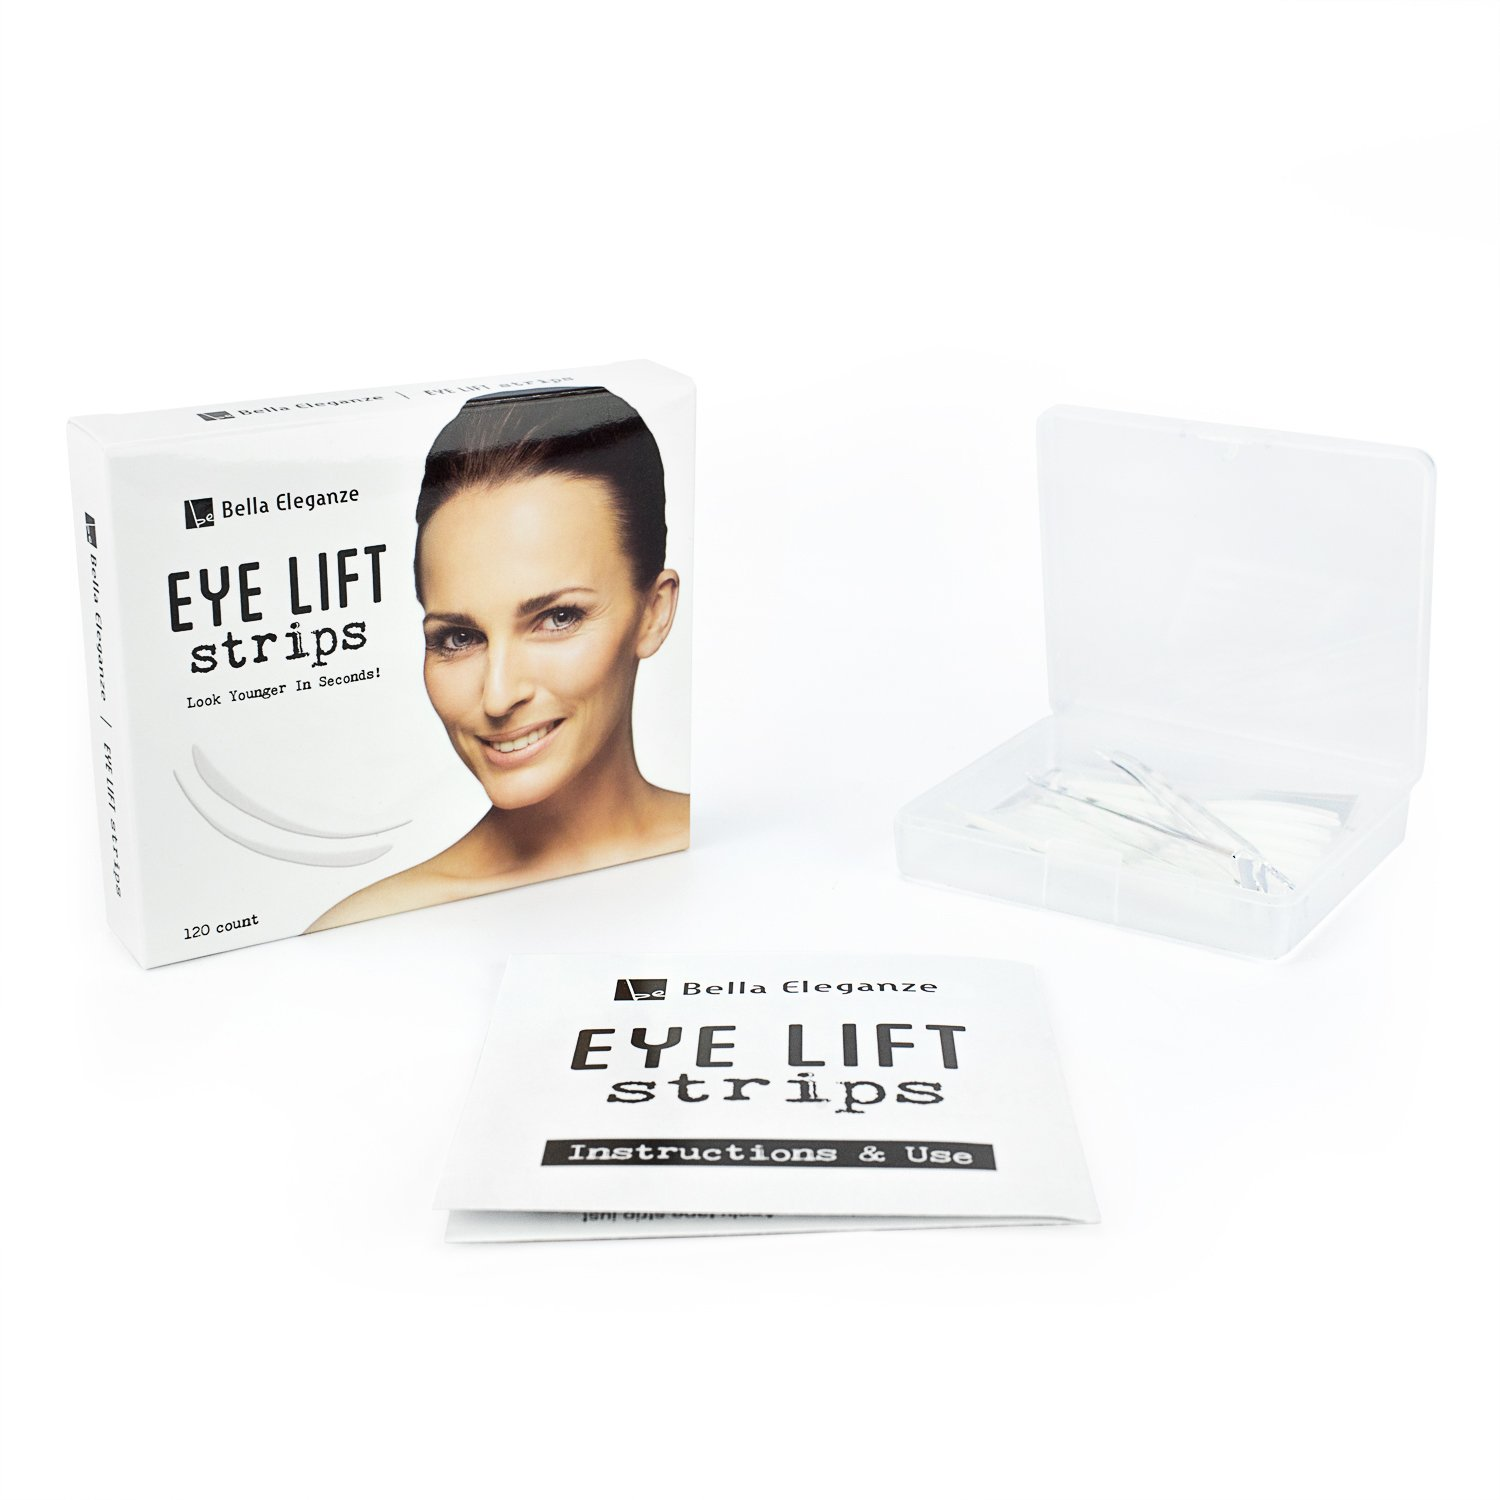 How to even out your eyelids without surgery youtube - Bella Eleganze Beauty Eyelid Tape Instant Eyelid Lift Without Surgery Achieve Big Beautiful Eyes